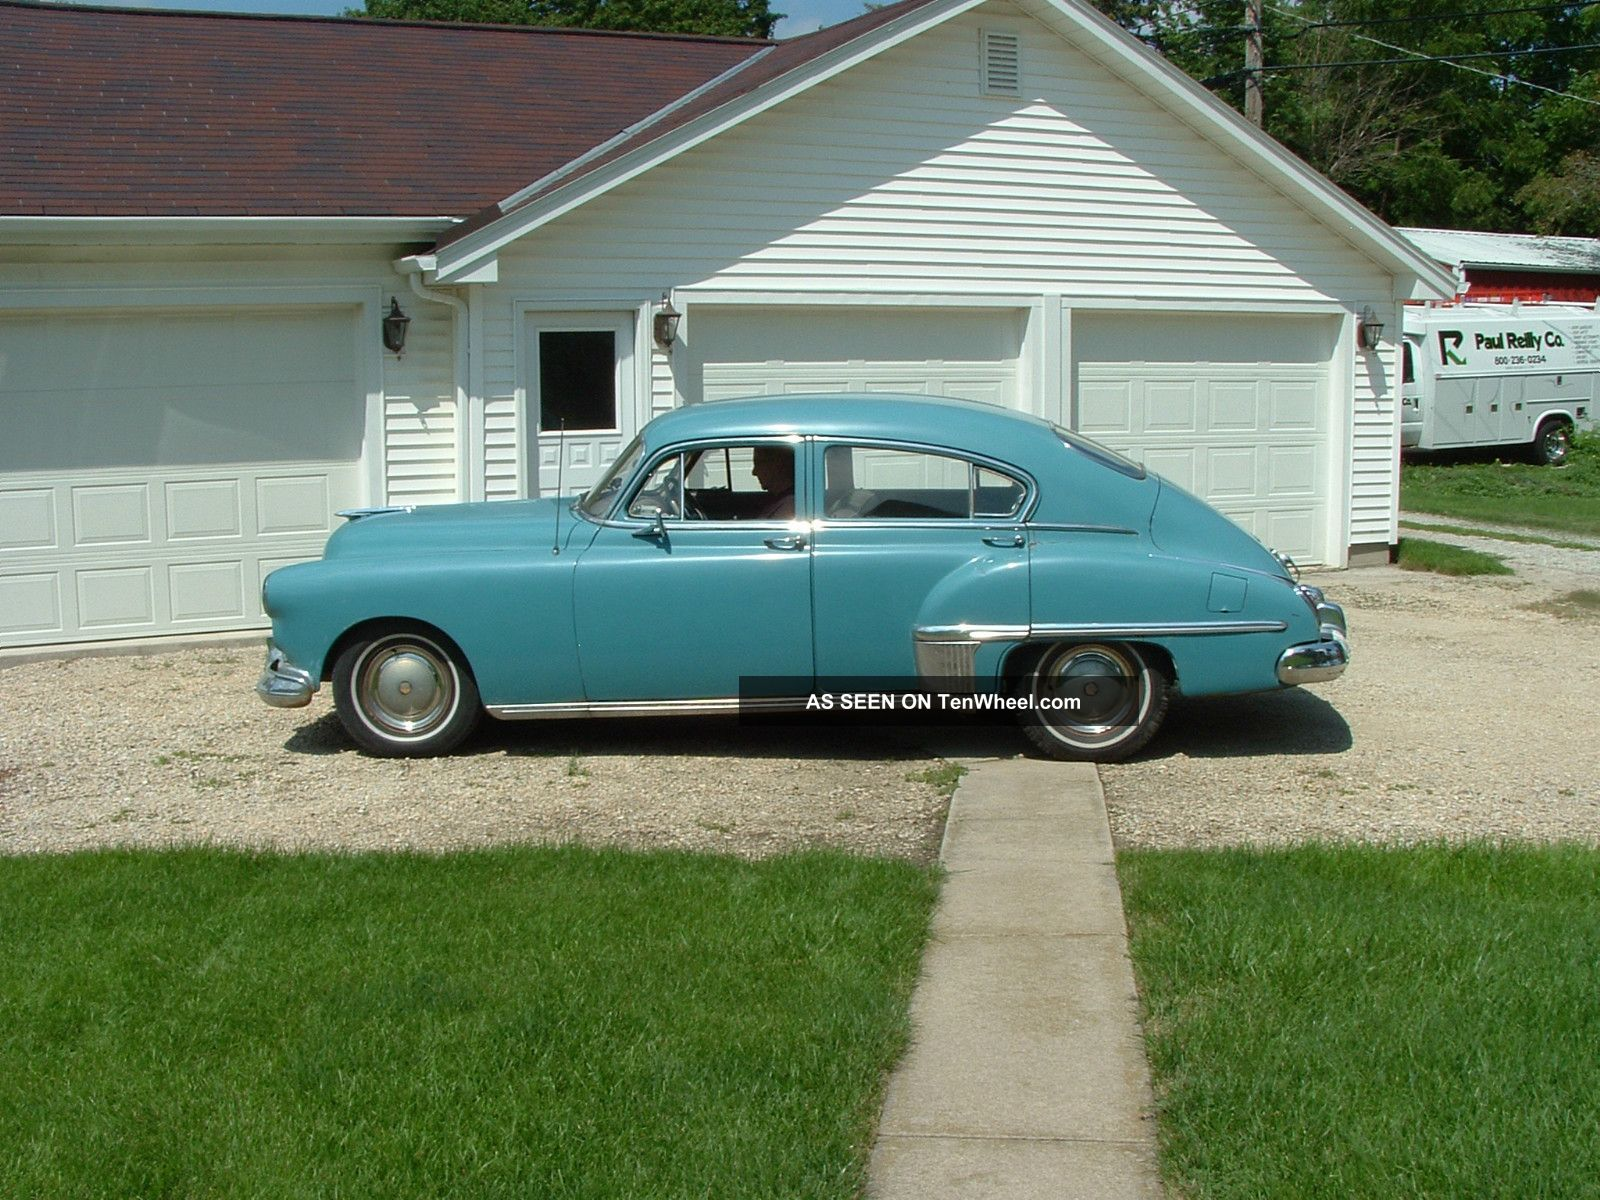 1949 oldsmobile futuramic 78 deluxe 4 door sedan for 1949 chevrolet deluxe 4 door